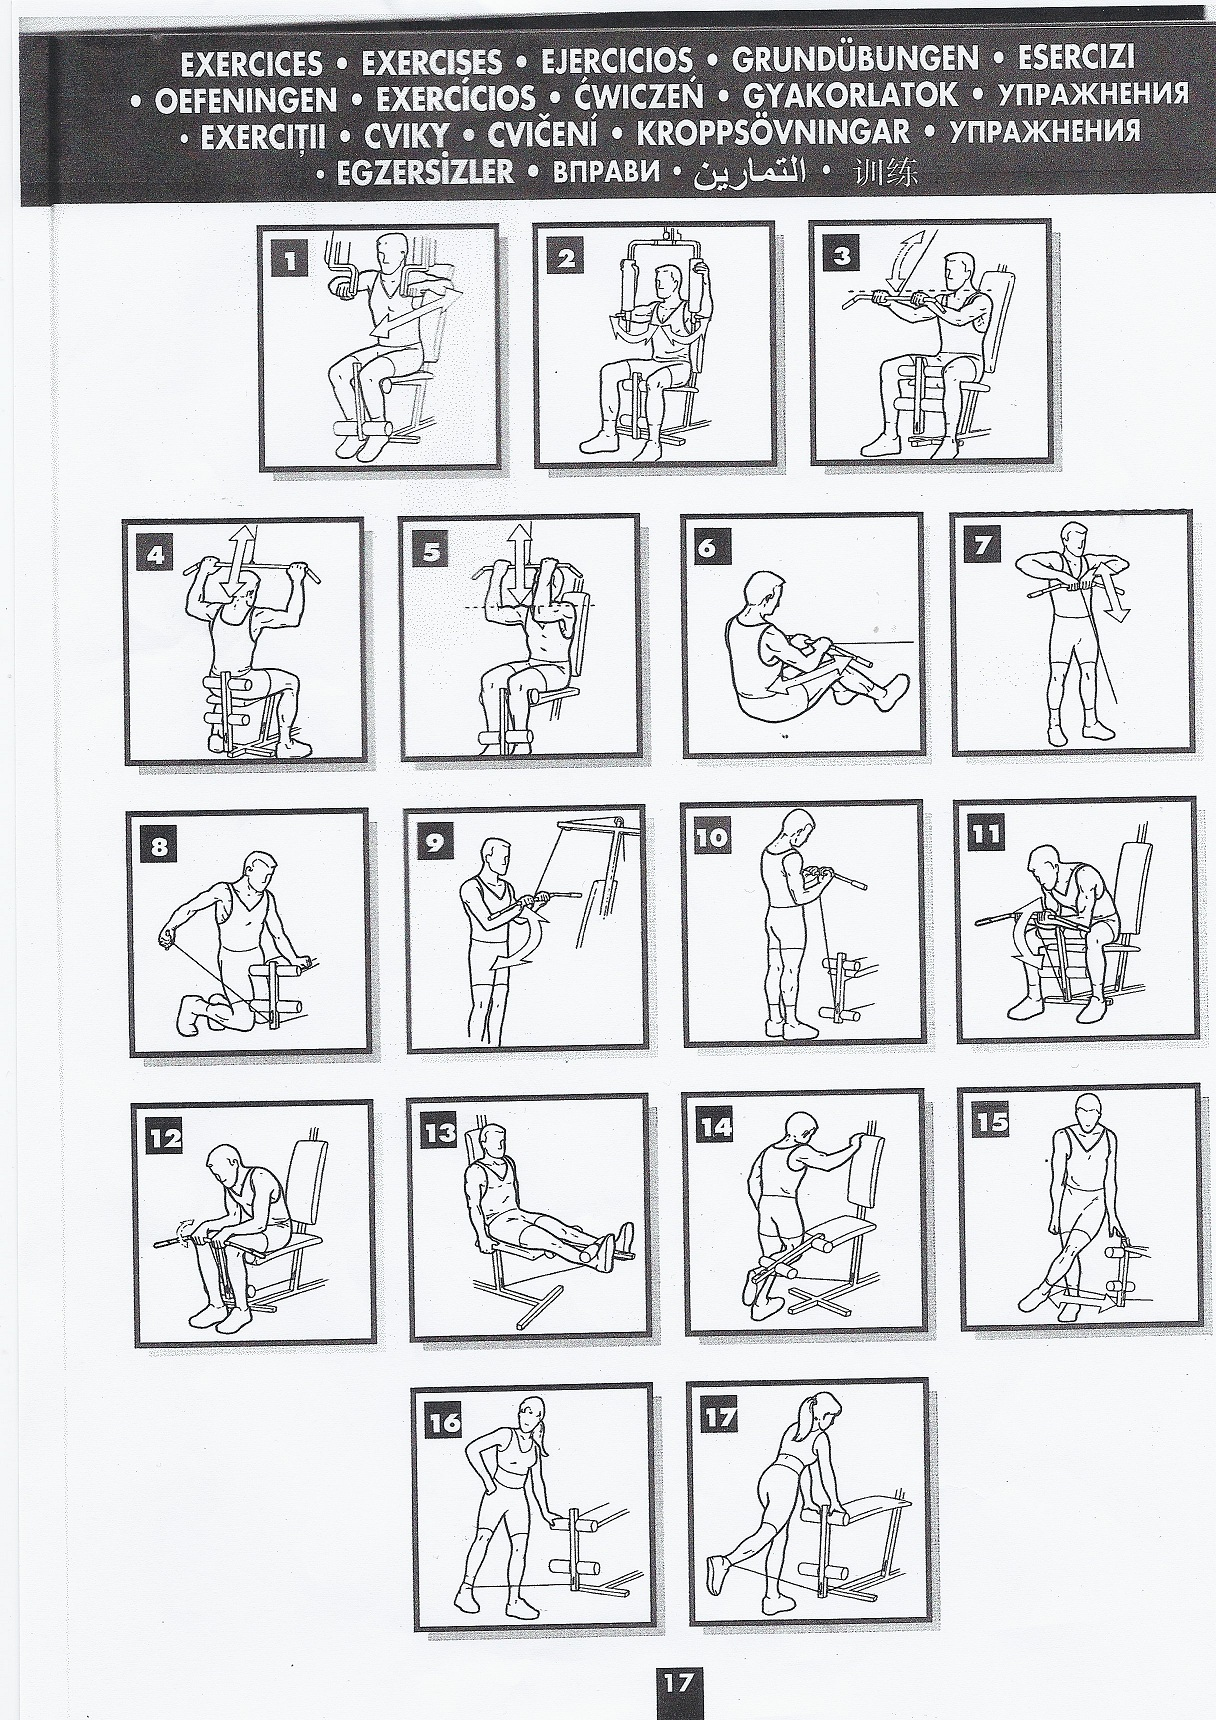 exercice musculation machine